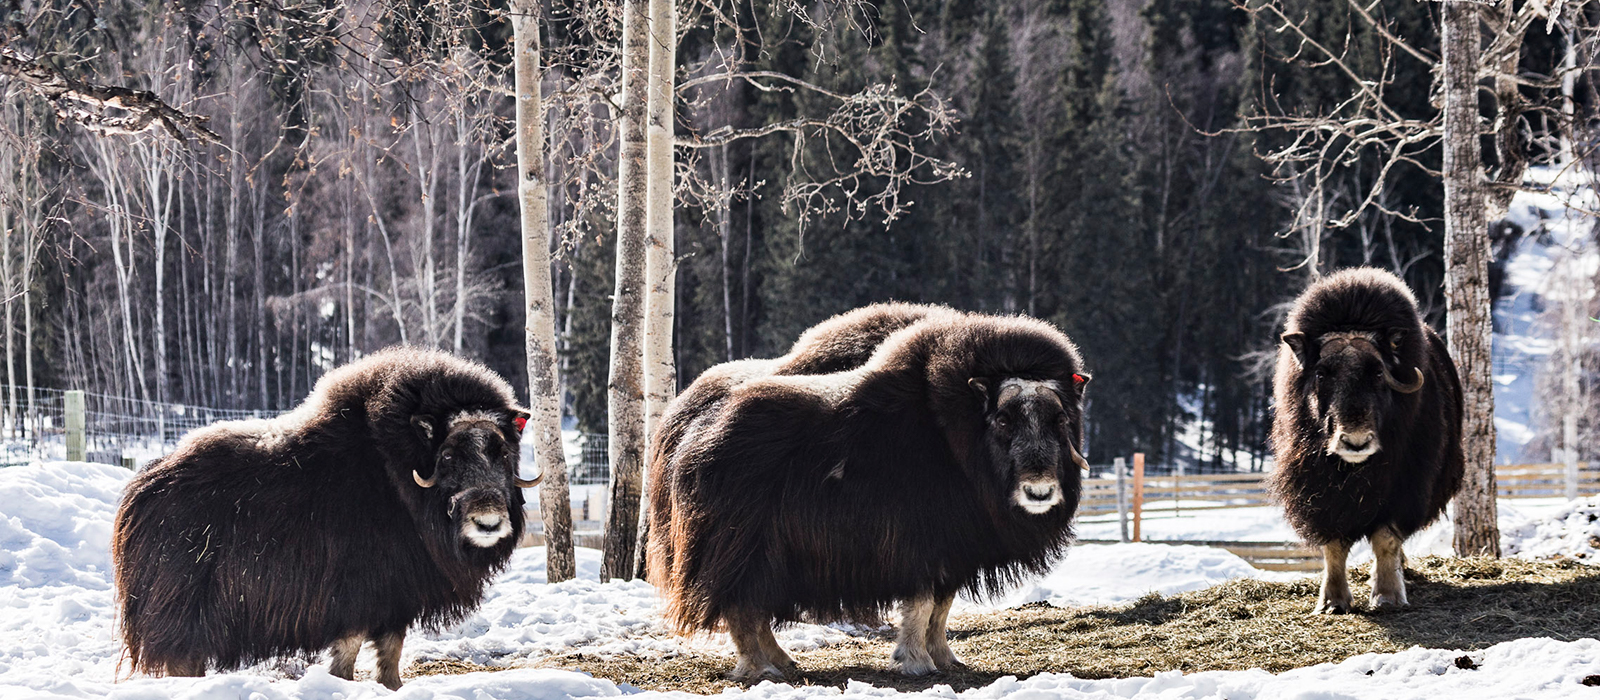 Musk ox at the farm